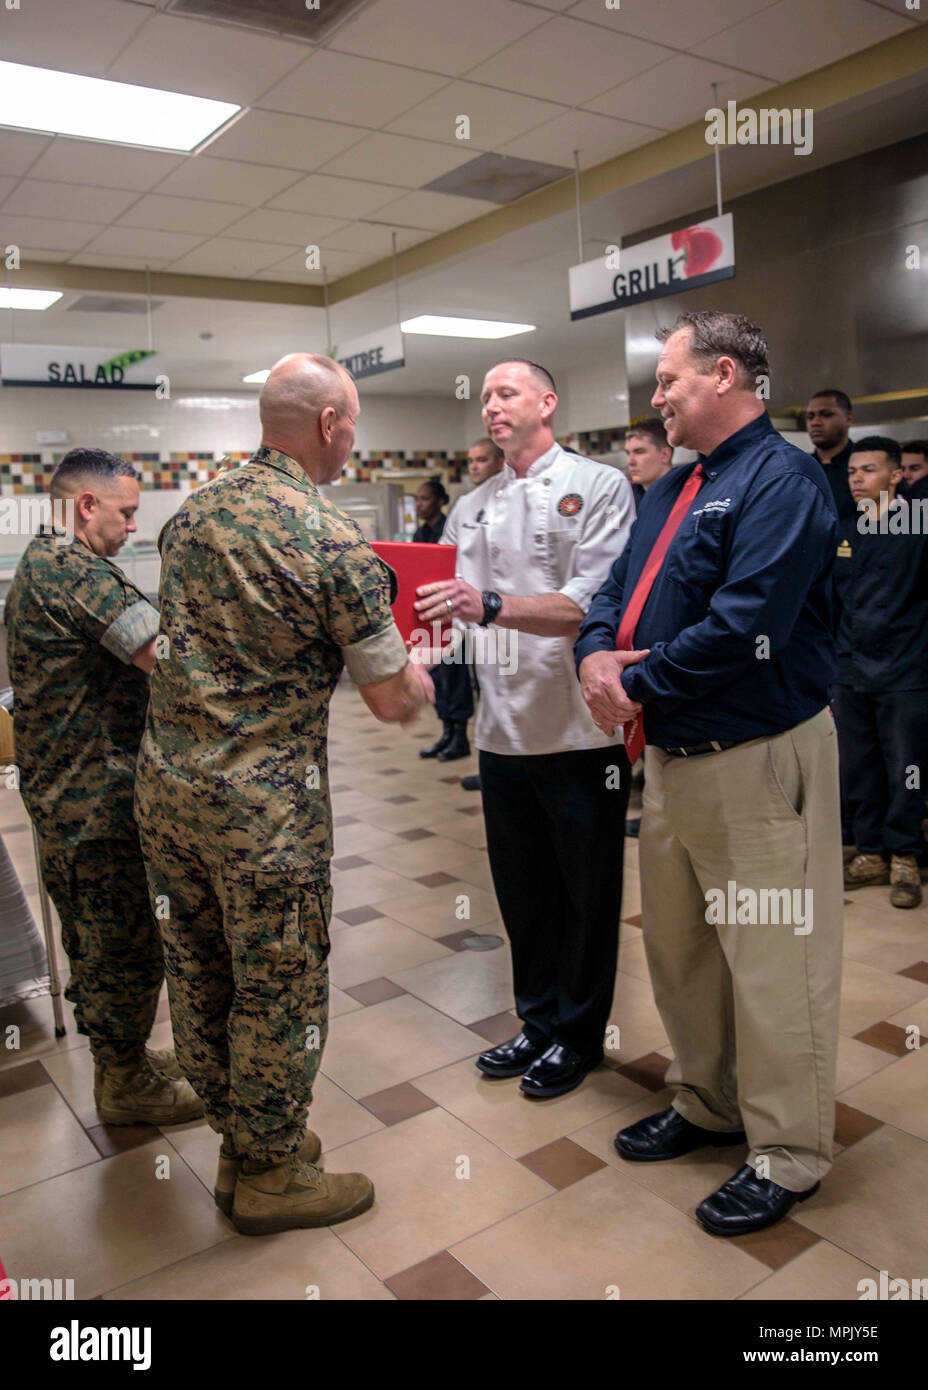 U.S. Marine Corps Col. Scott A. Baldwin, left, assistant chief of staff, Marine Corps Installations Command, presents Master Sgt. Matthew J. Jacobs, regimental mess chief, 2nd Marine Division, with the semiannual Marine and Mess Attendant Award to during an award ceremony for best full food service mess hall in the Marine Corps, Camp Lejeune, N.C., March 14, 2017. The mess halls were judged on factors such as cleanliness, recipe compliance, quality of food, teamwork, execution and training. (U.S. Marine Corps photo by Lance Cpl. Ashley D. Gomez) - Stock Image